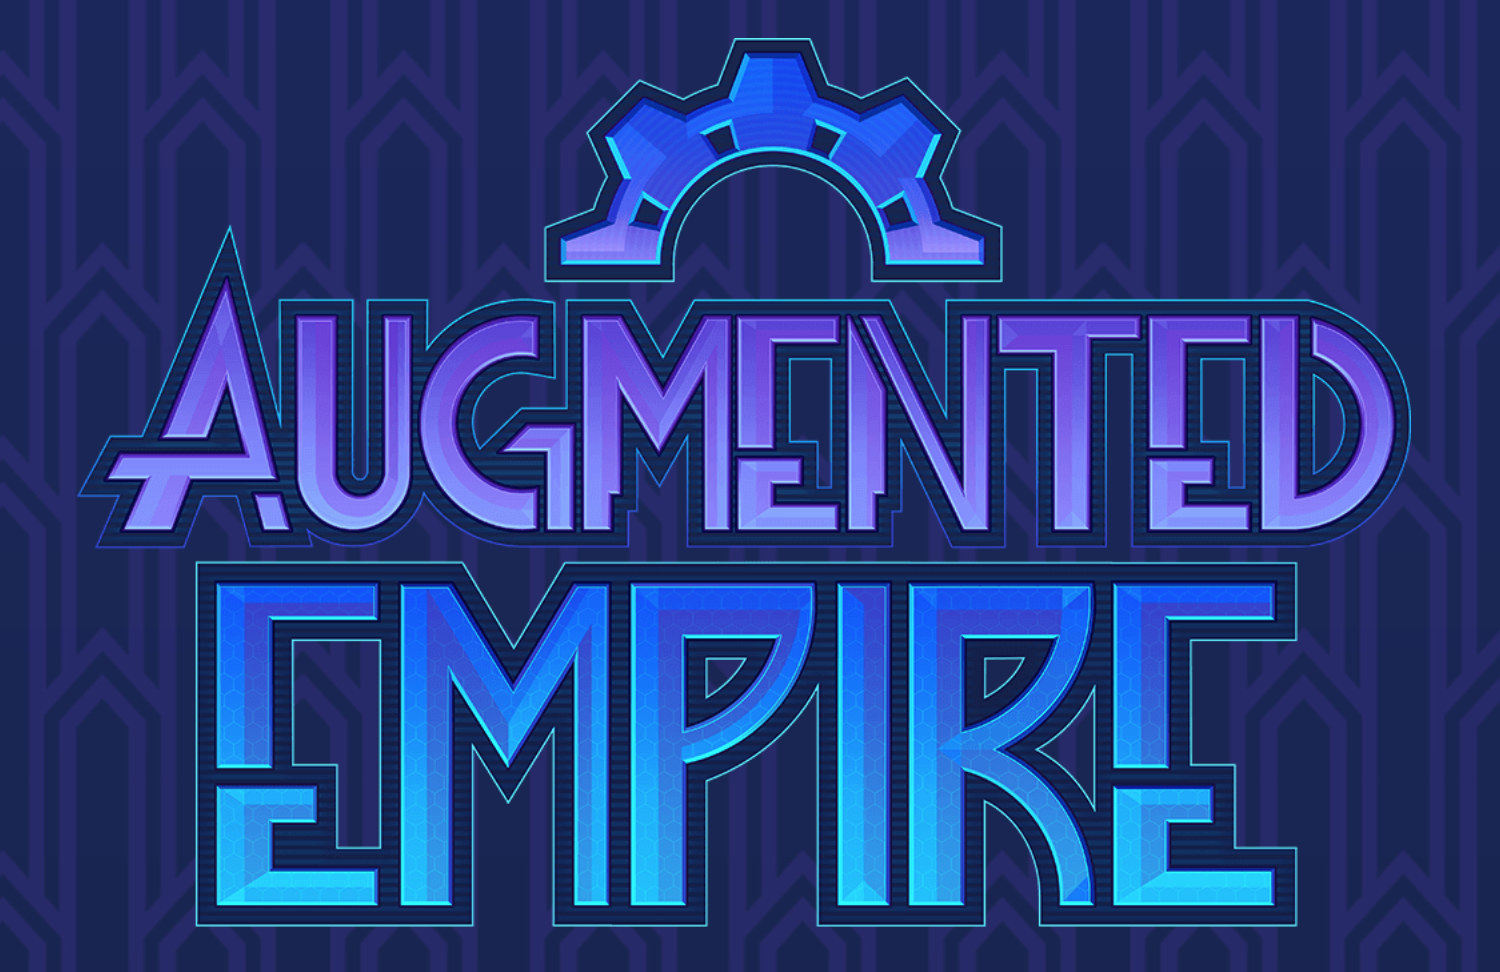 Augmented Empire is an X-COM-like tactical RPG coming to Gear VR